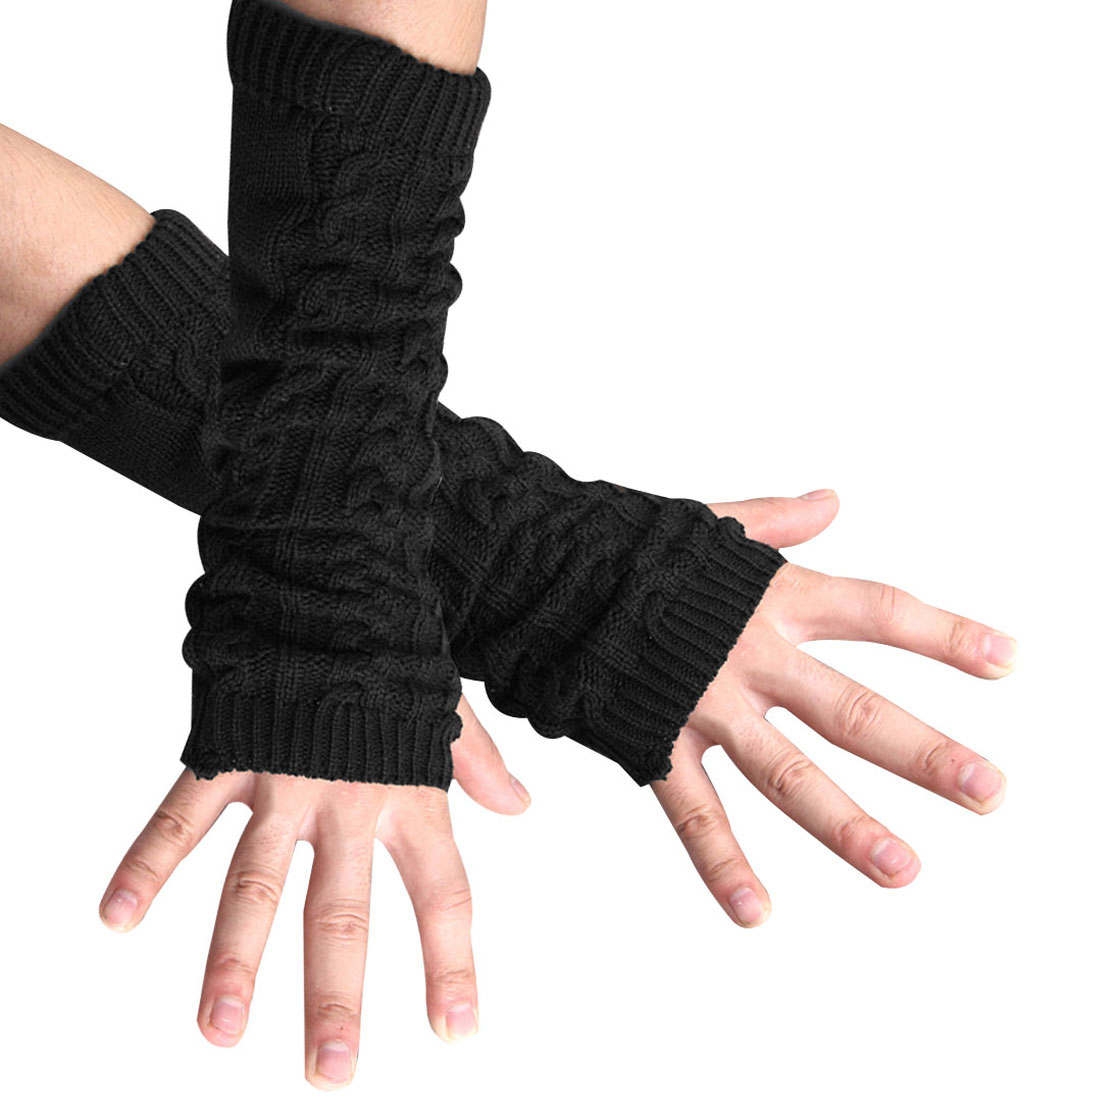 Black New Winter Fingerless Arm Warmer Long Stretch Gloves for Mens